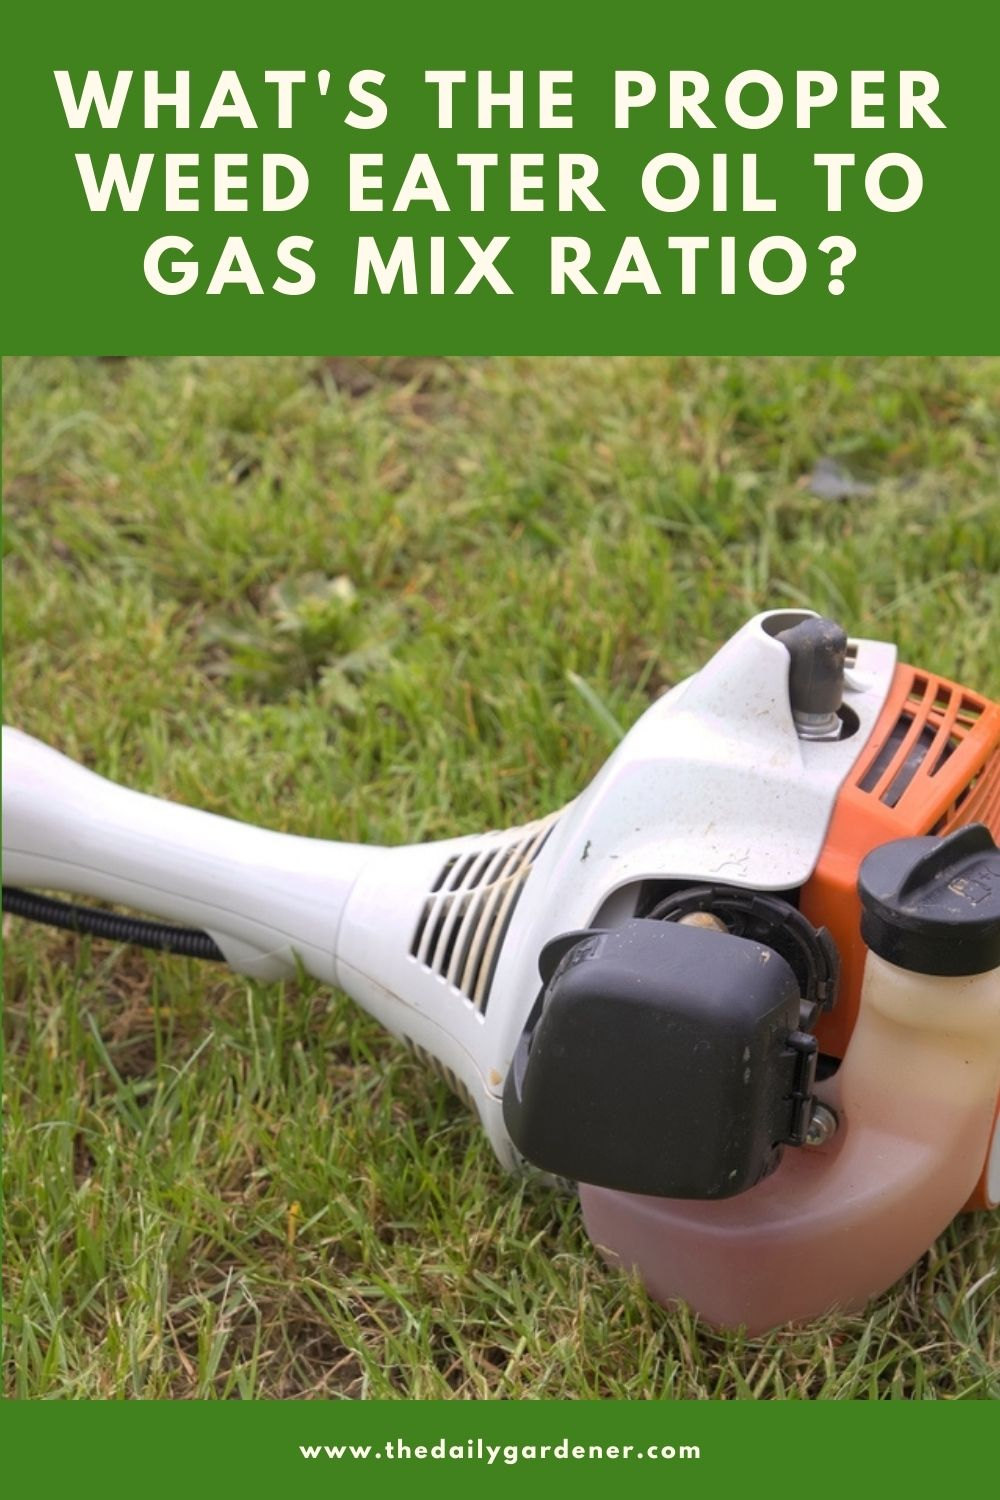 What's the Proper Weed Eater Oil to Gas Mix Ratio 1